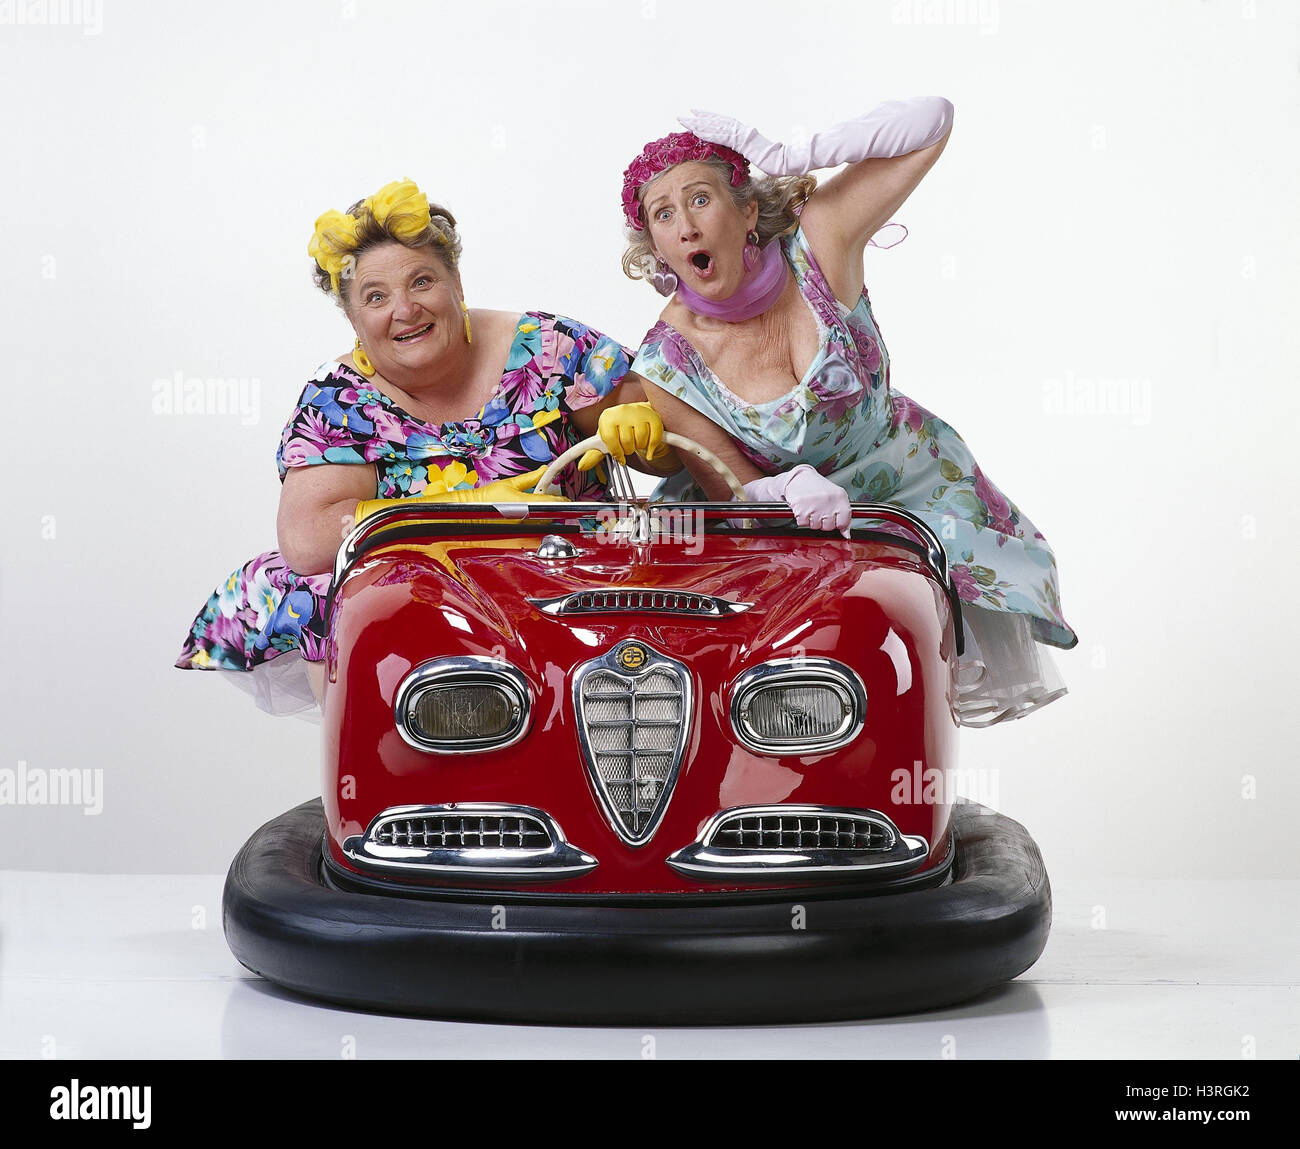 Women, two, middle old person, dodgem cars pleasure, amusement, melted, fun, Skooter, drive, studio, cut out Stock Photo